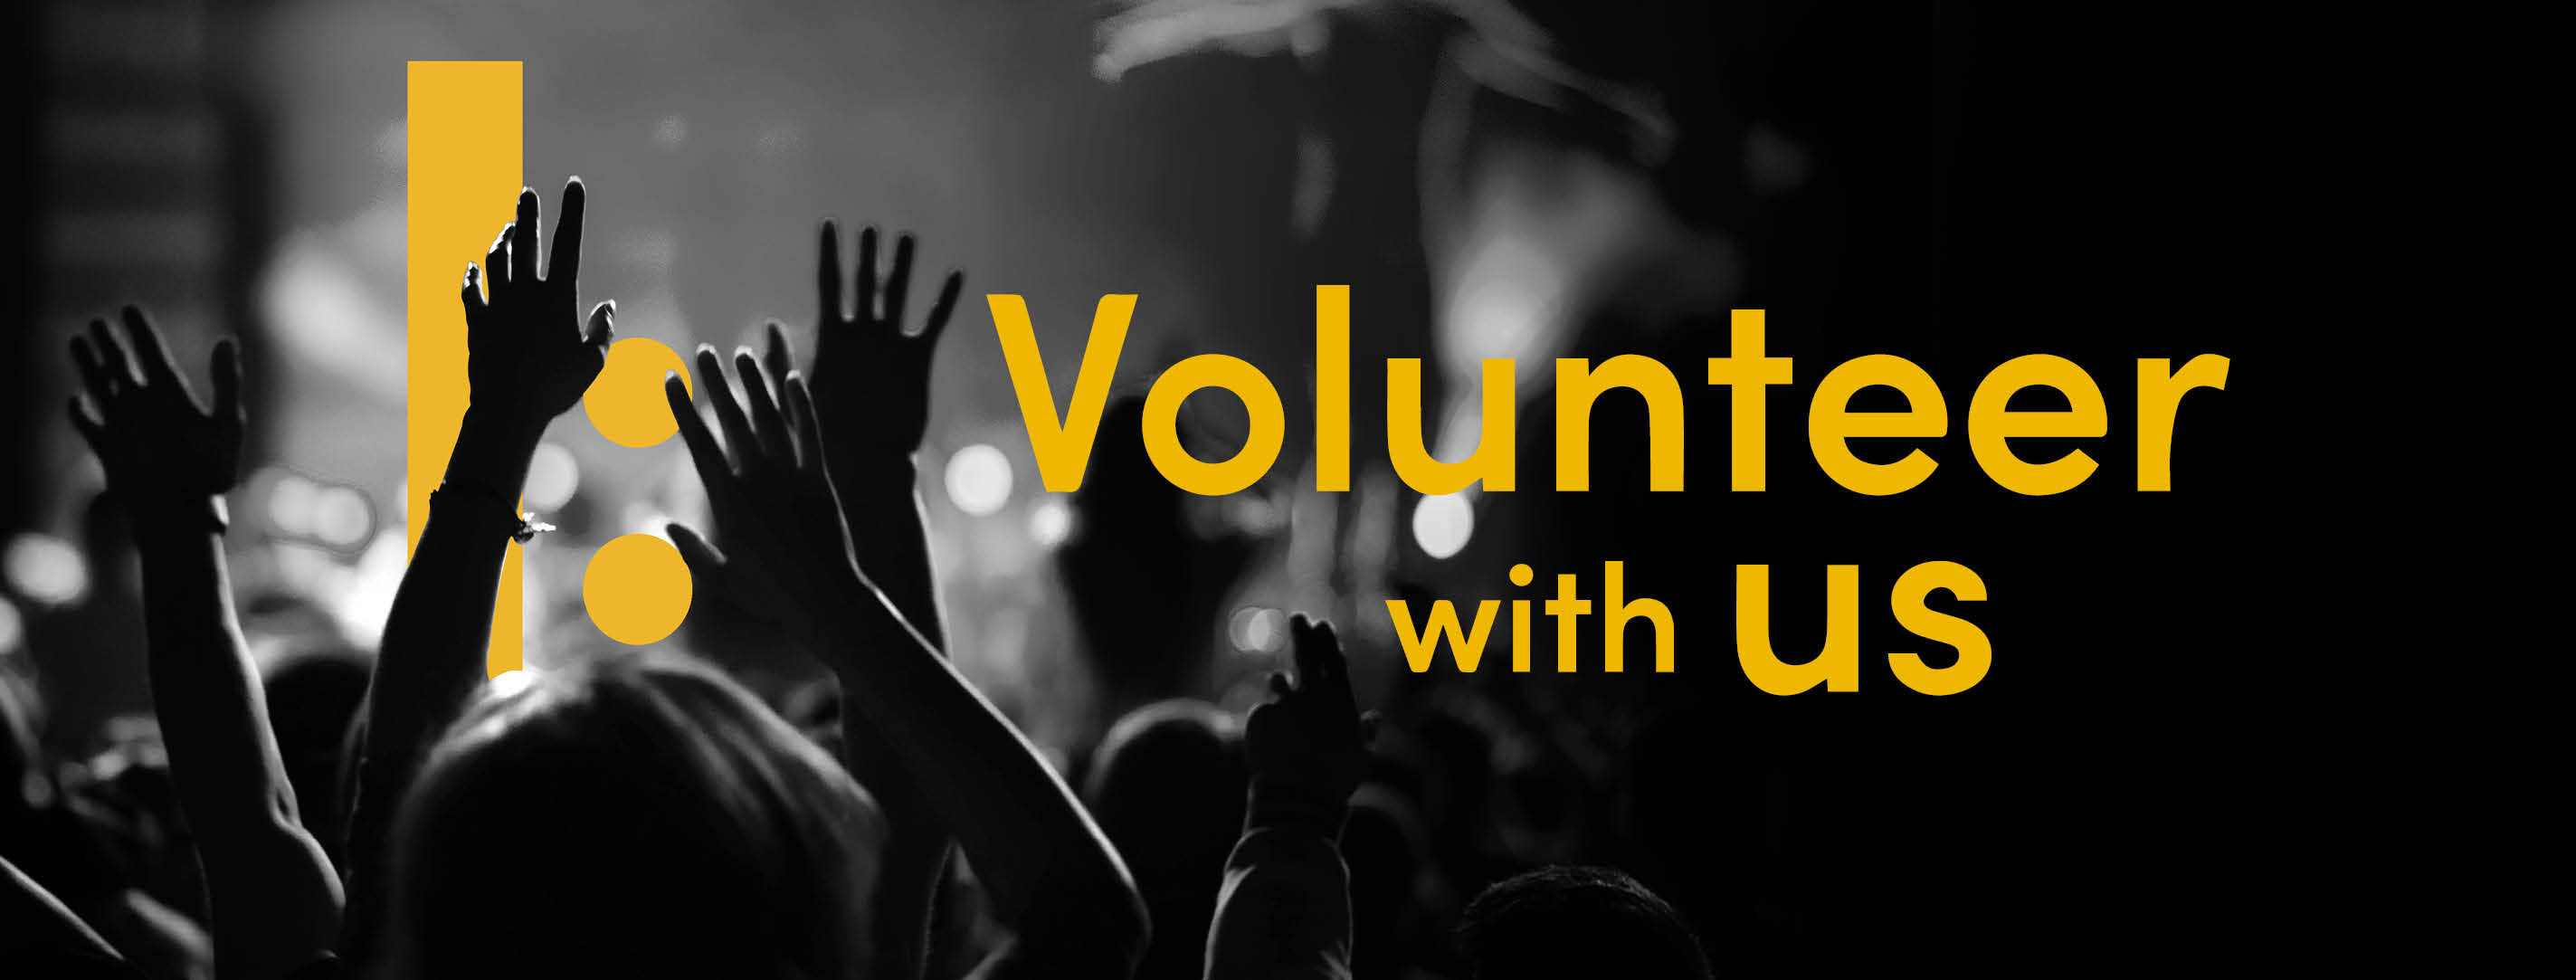 Support Our Work - Volunteer